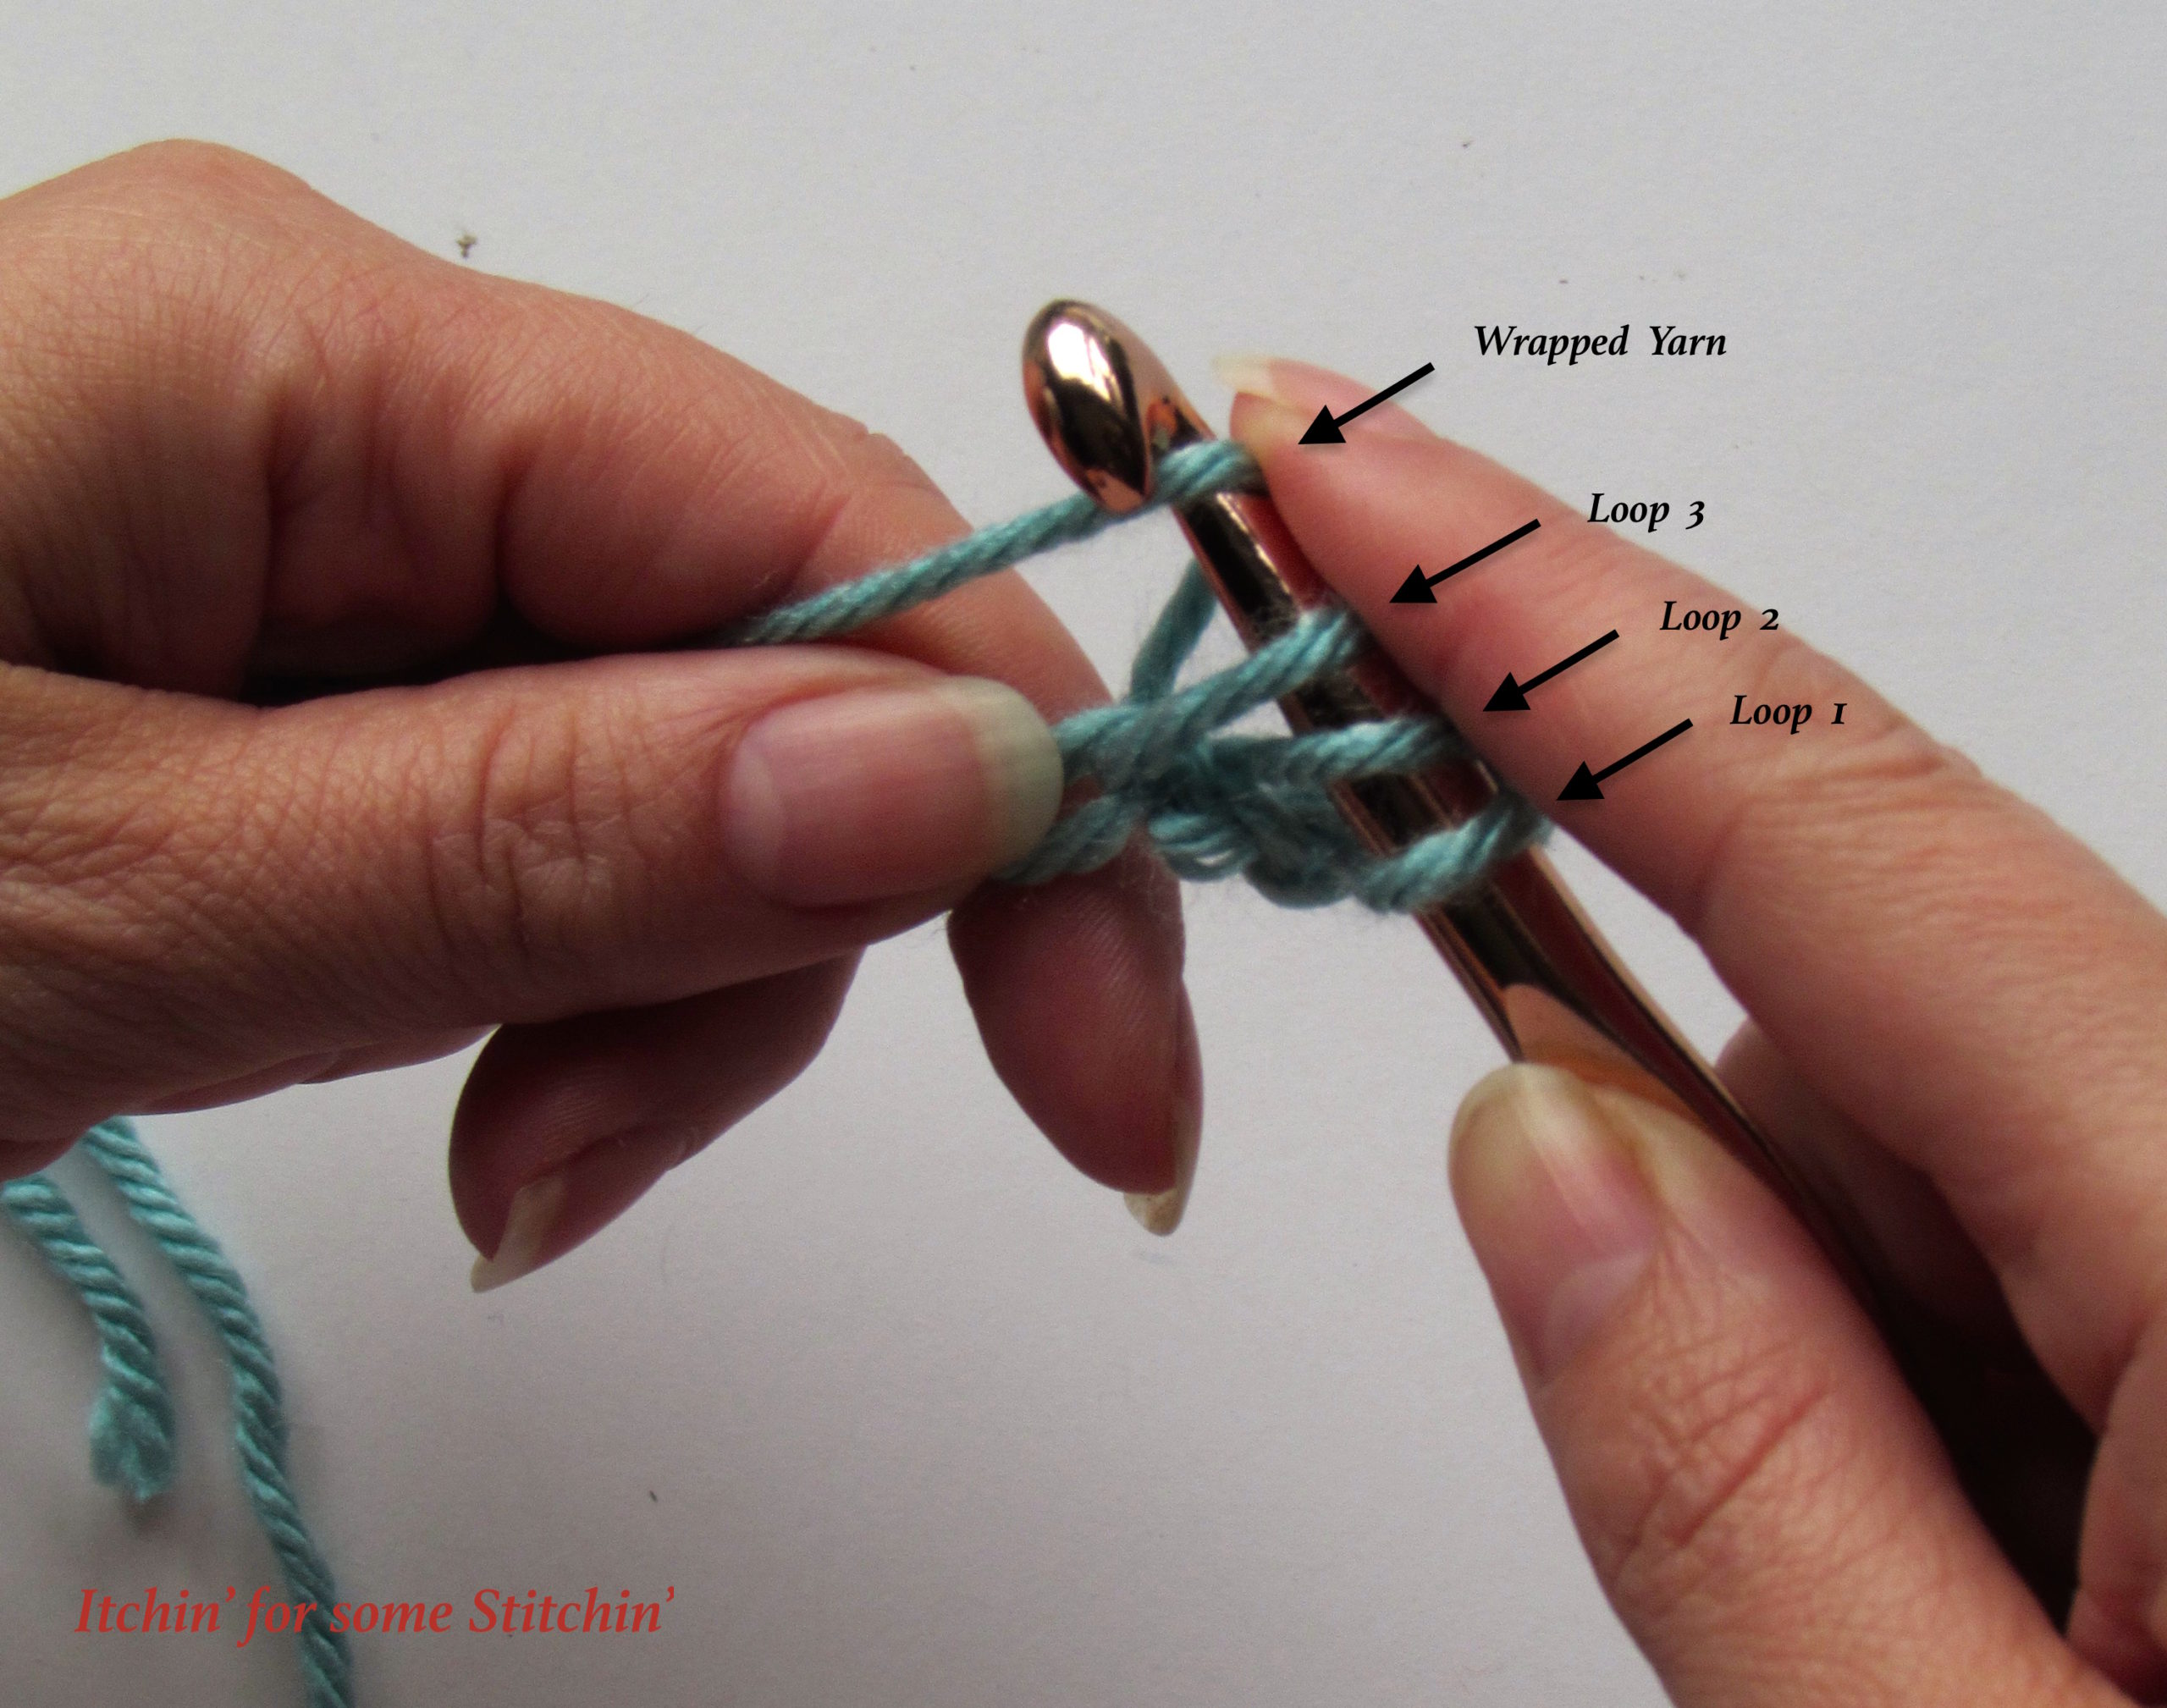 Beginner Crochet: How to Double Crochet - Itchin' for some